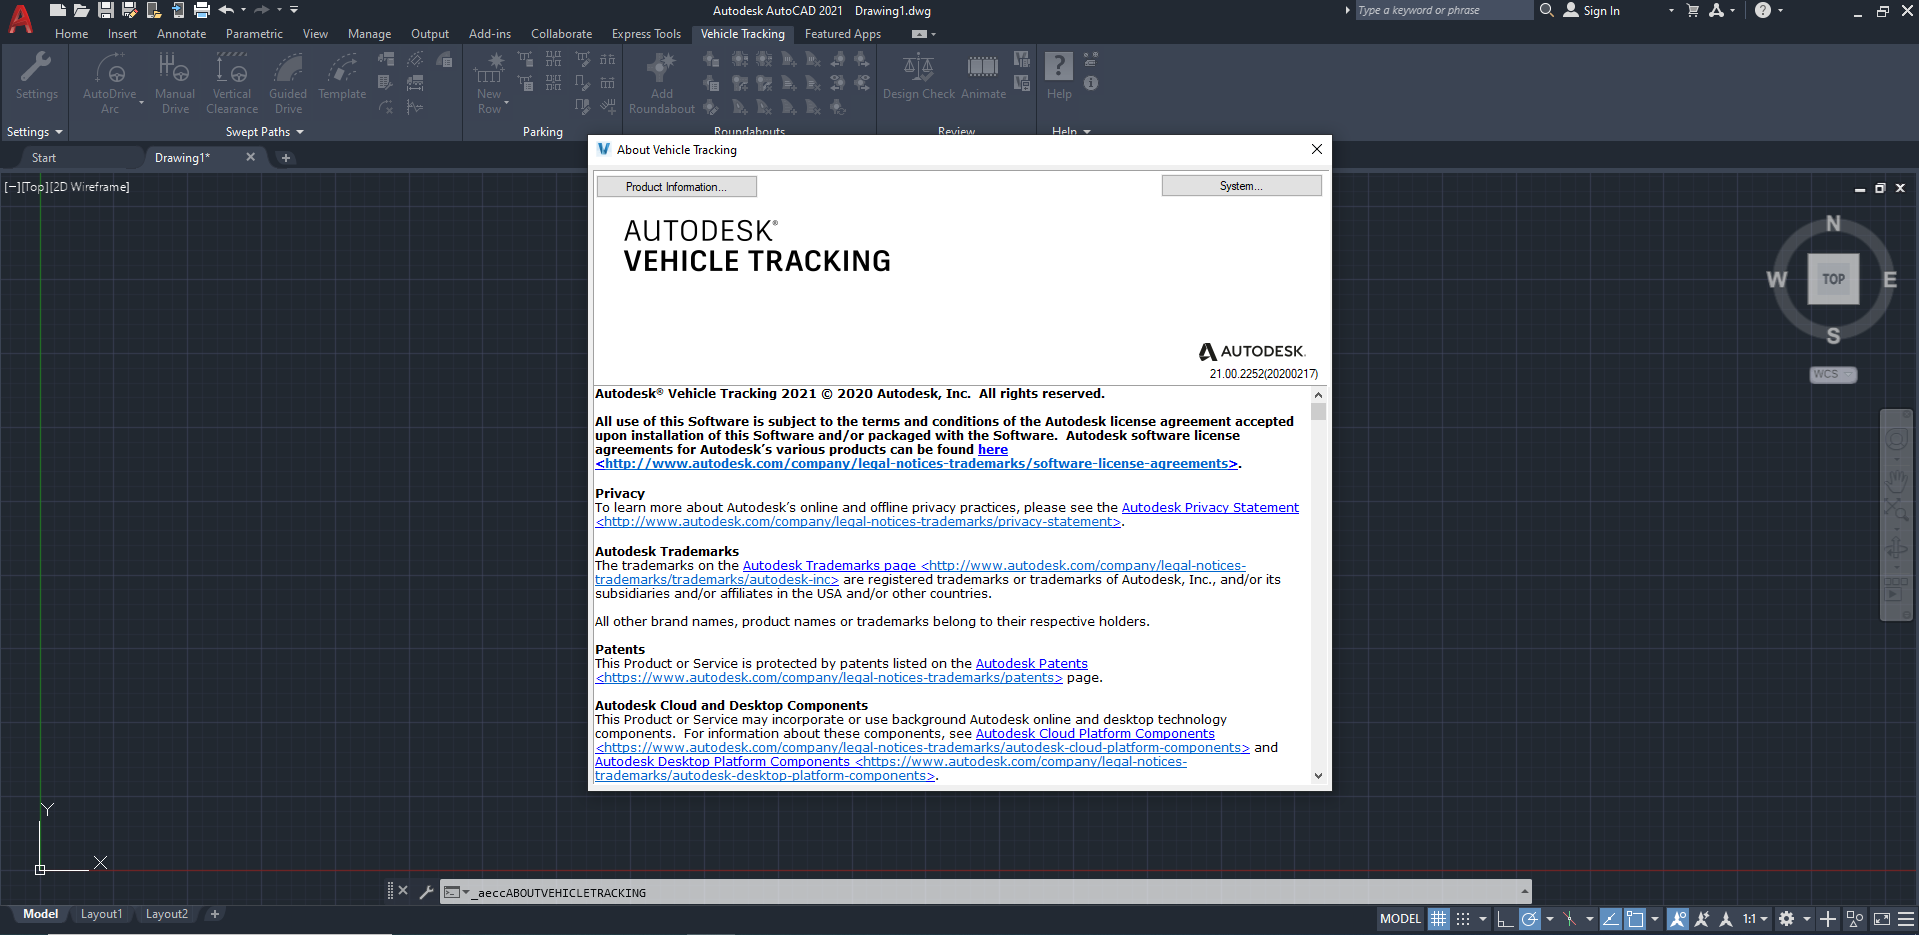 Working with Autodesk Vehicle Tracking 2021 full license